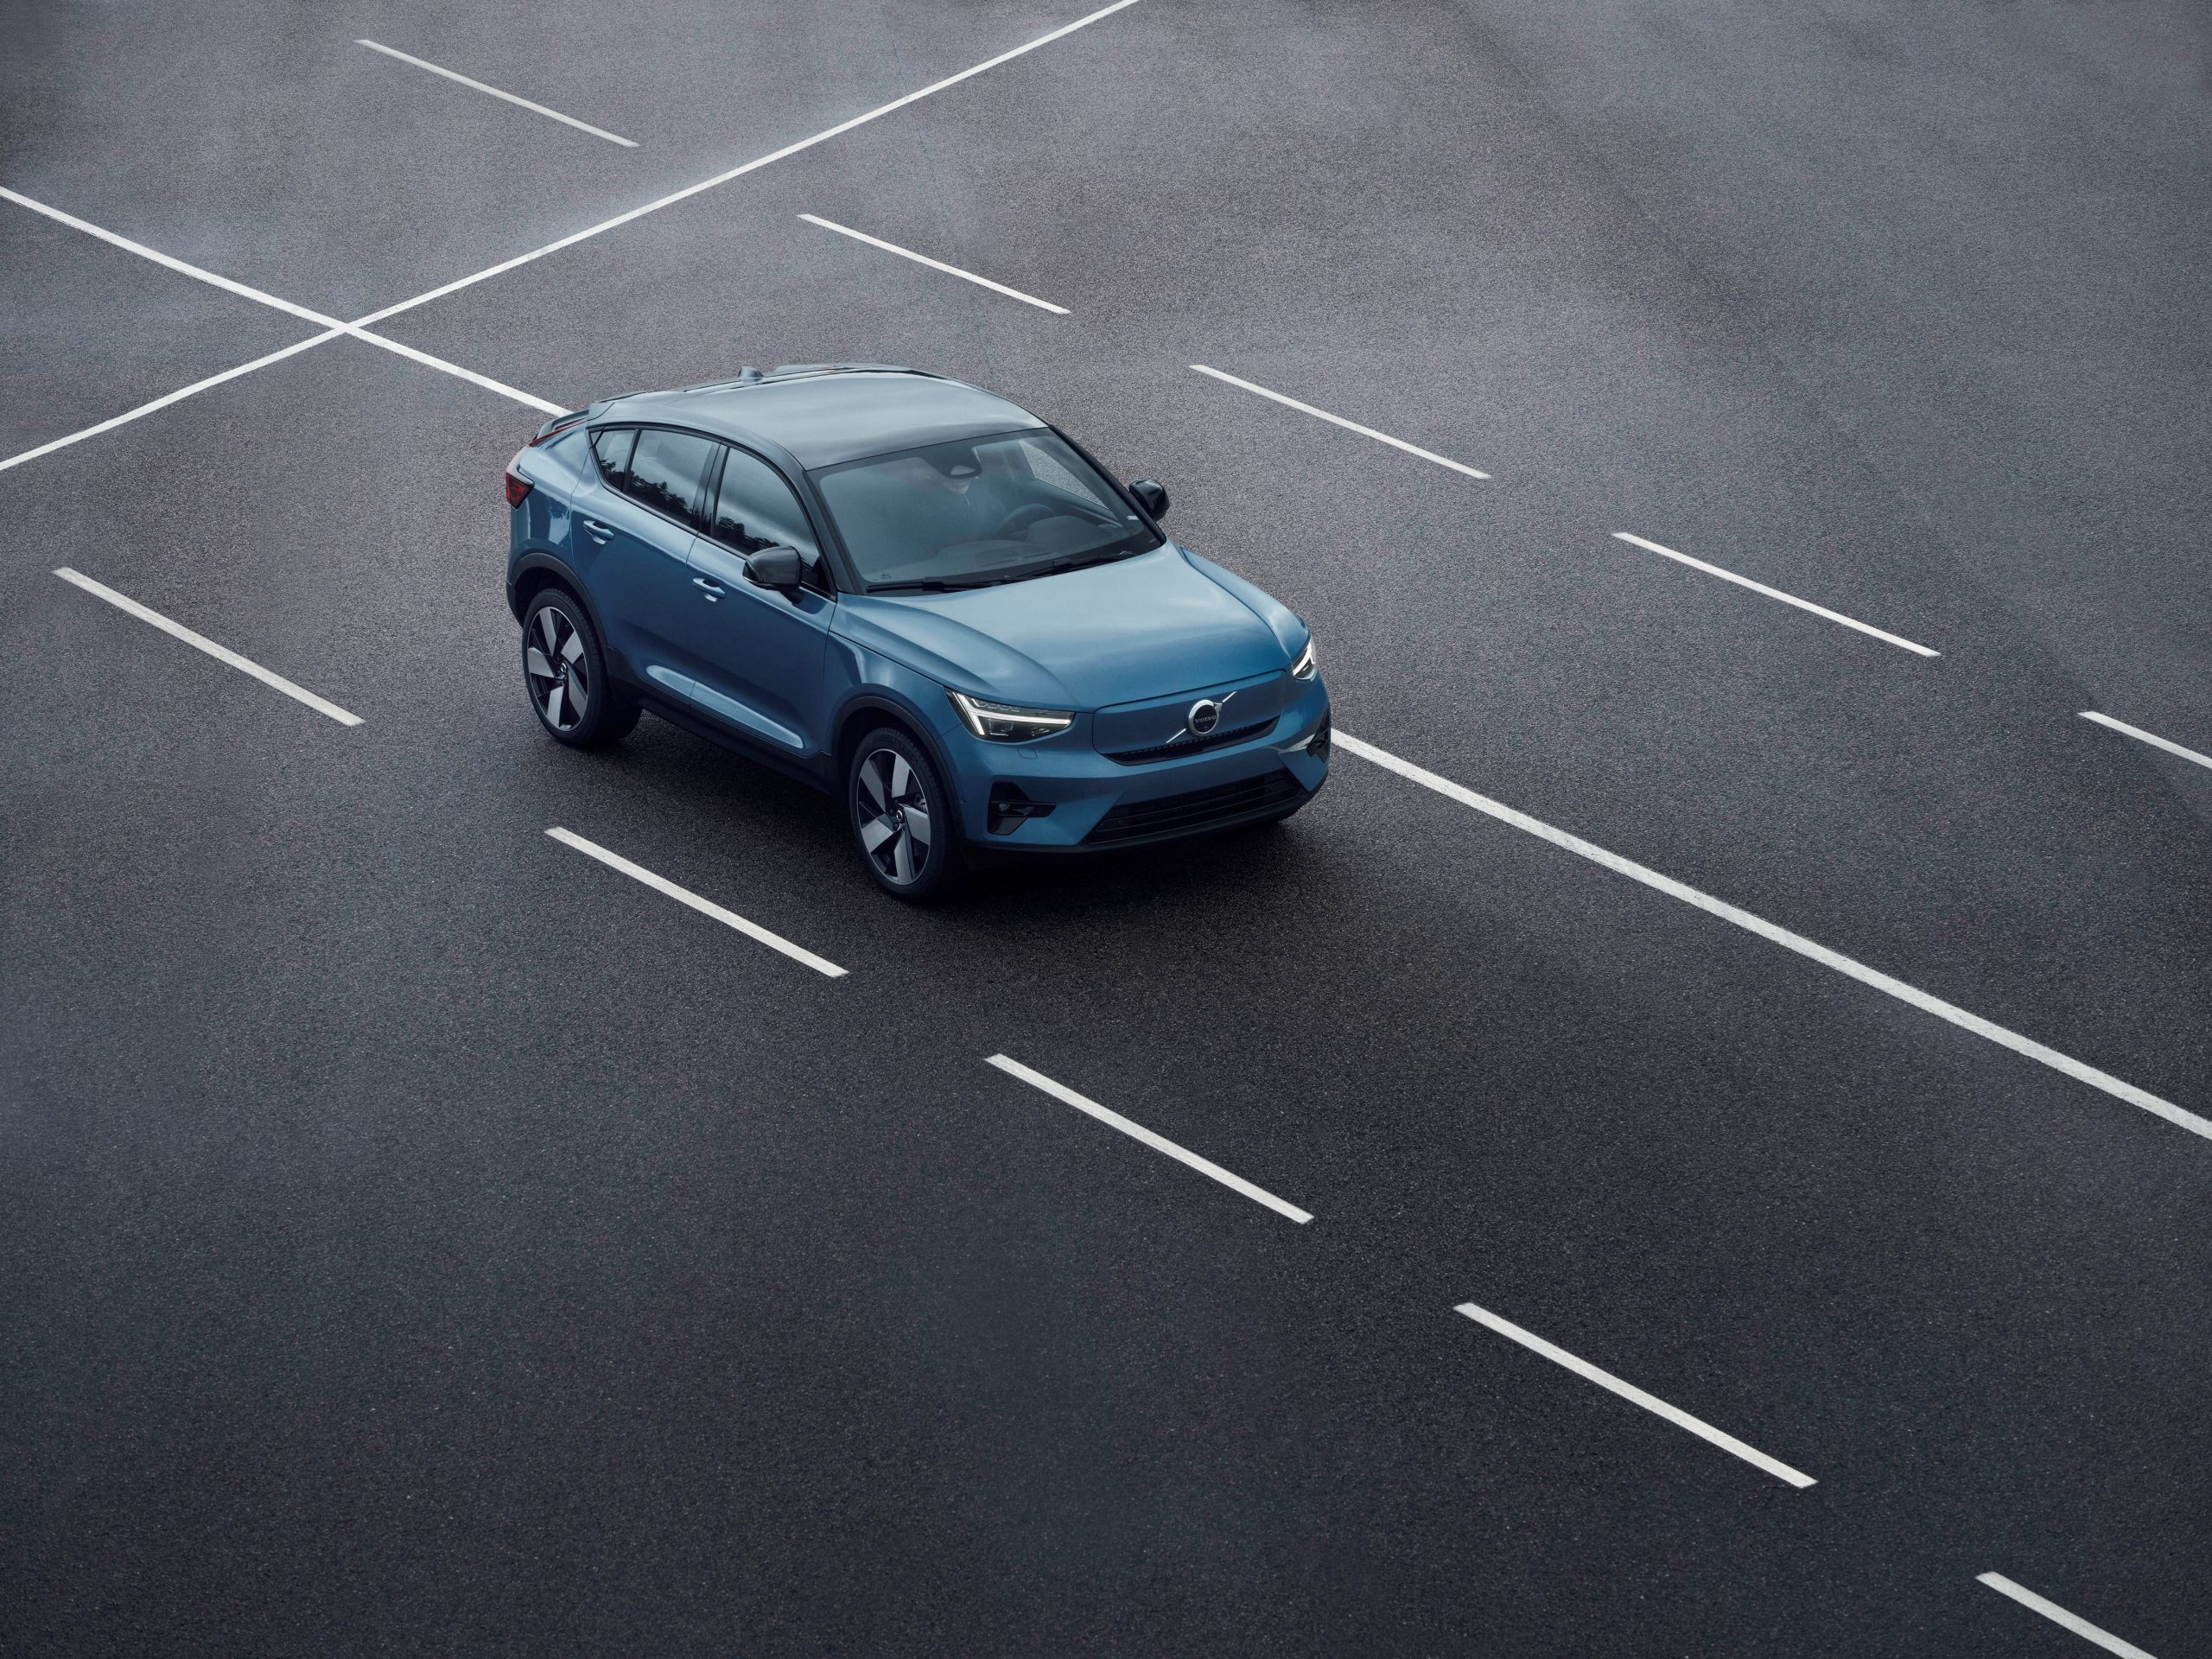 Volvo C40 Recharge driving